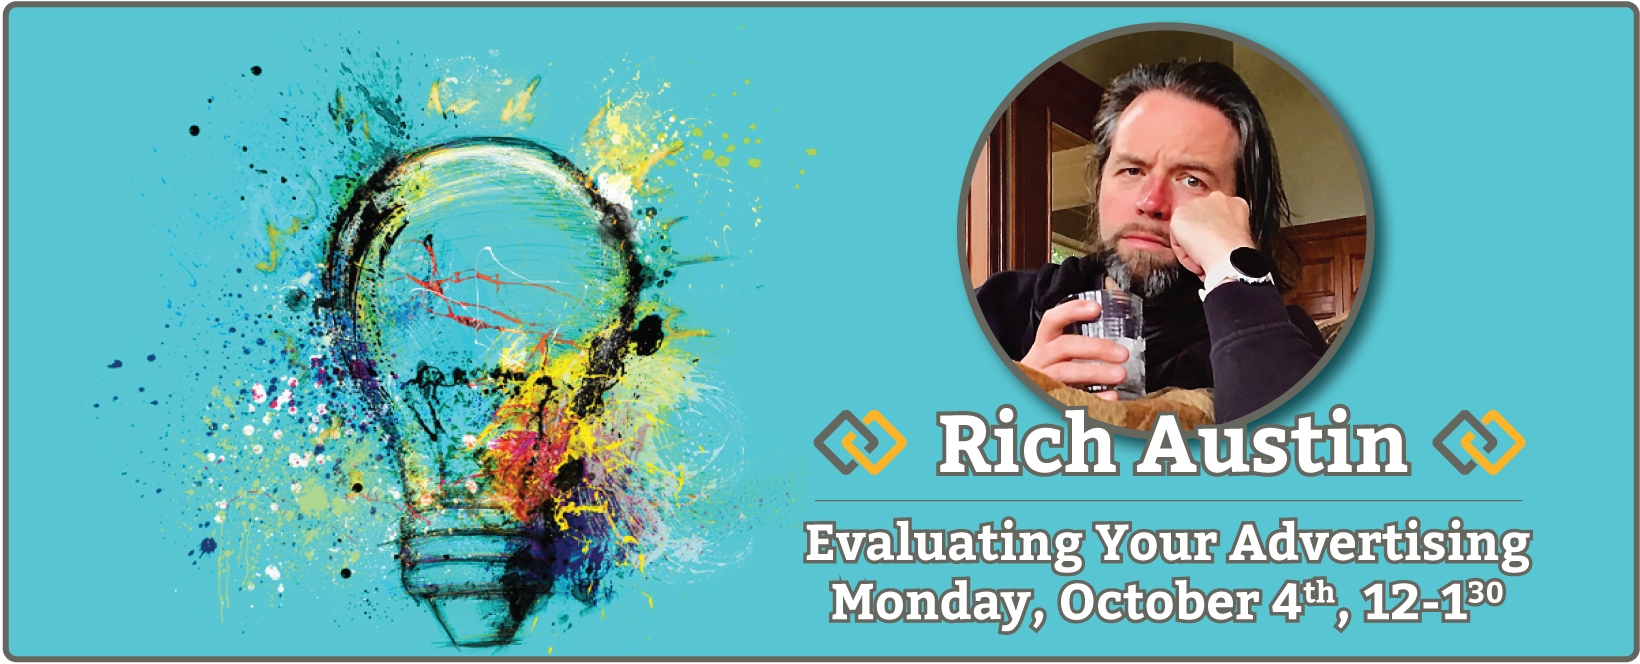 Carroll Business Network October 4th 2021 Featuring Rich Austin